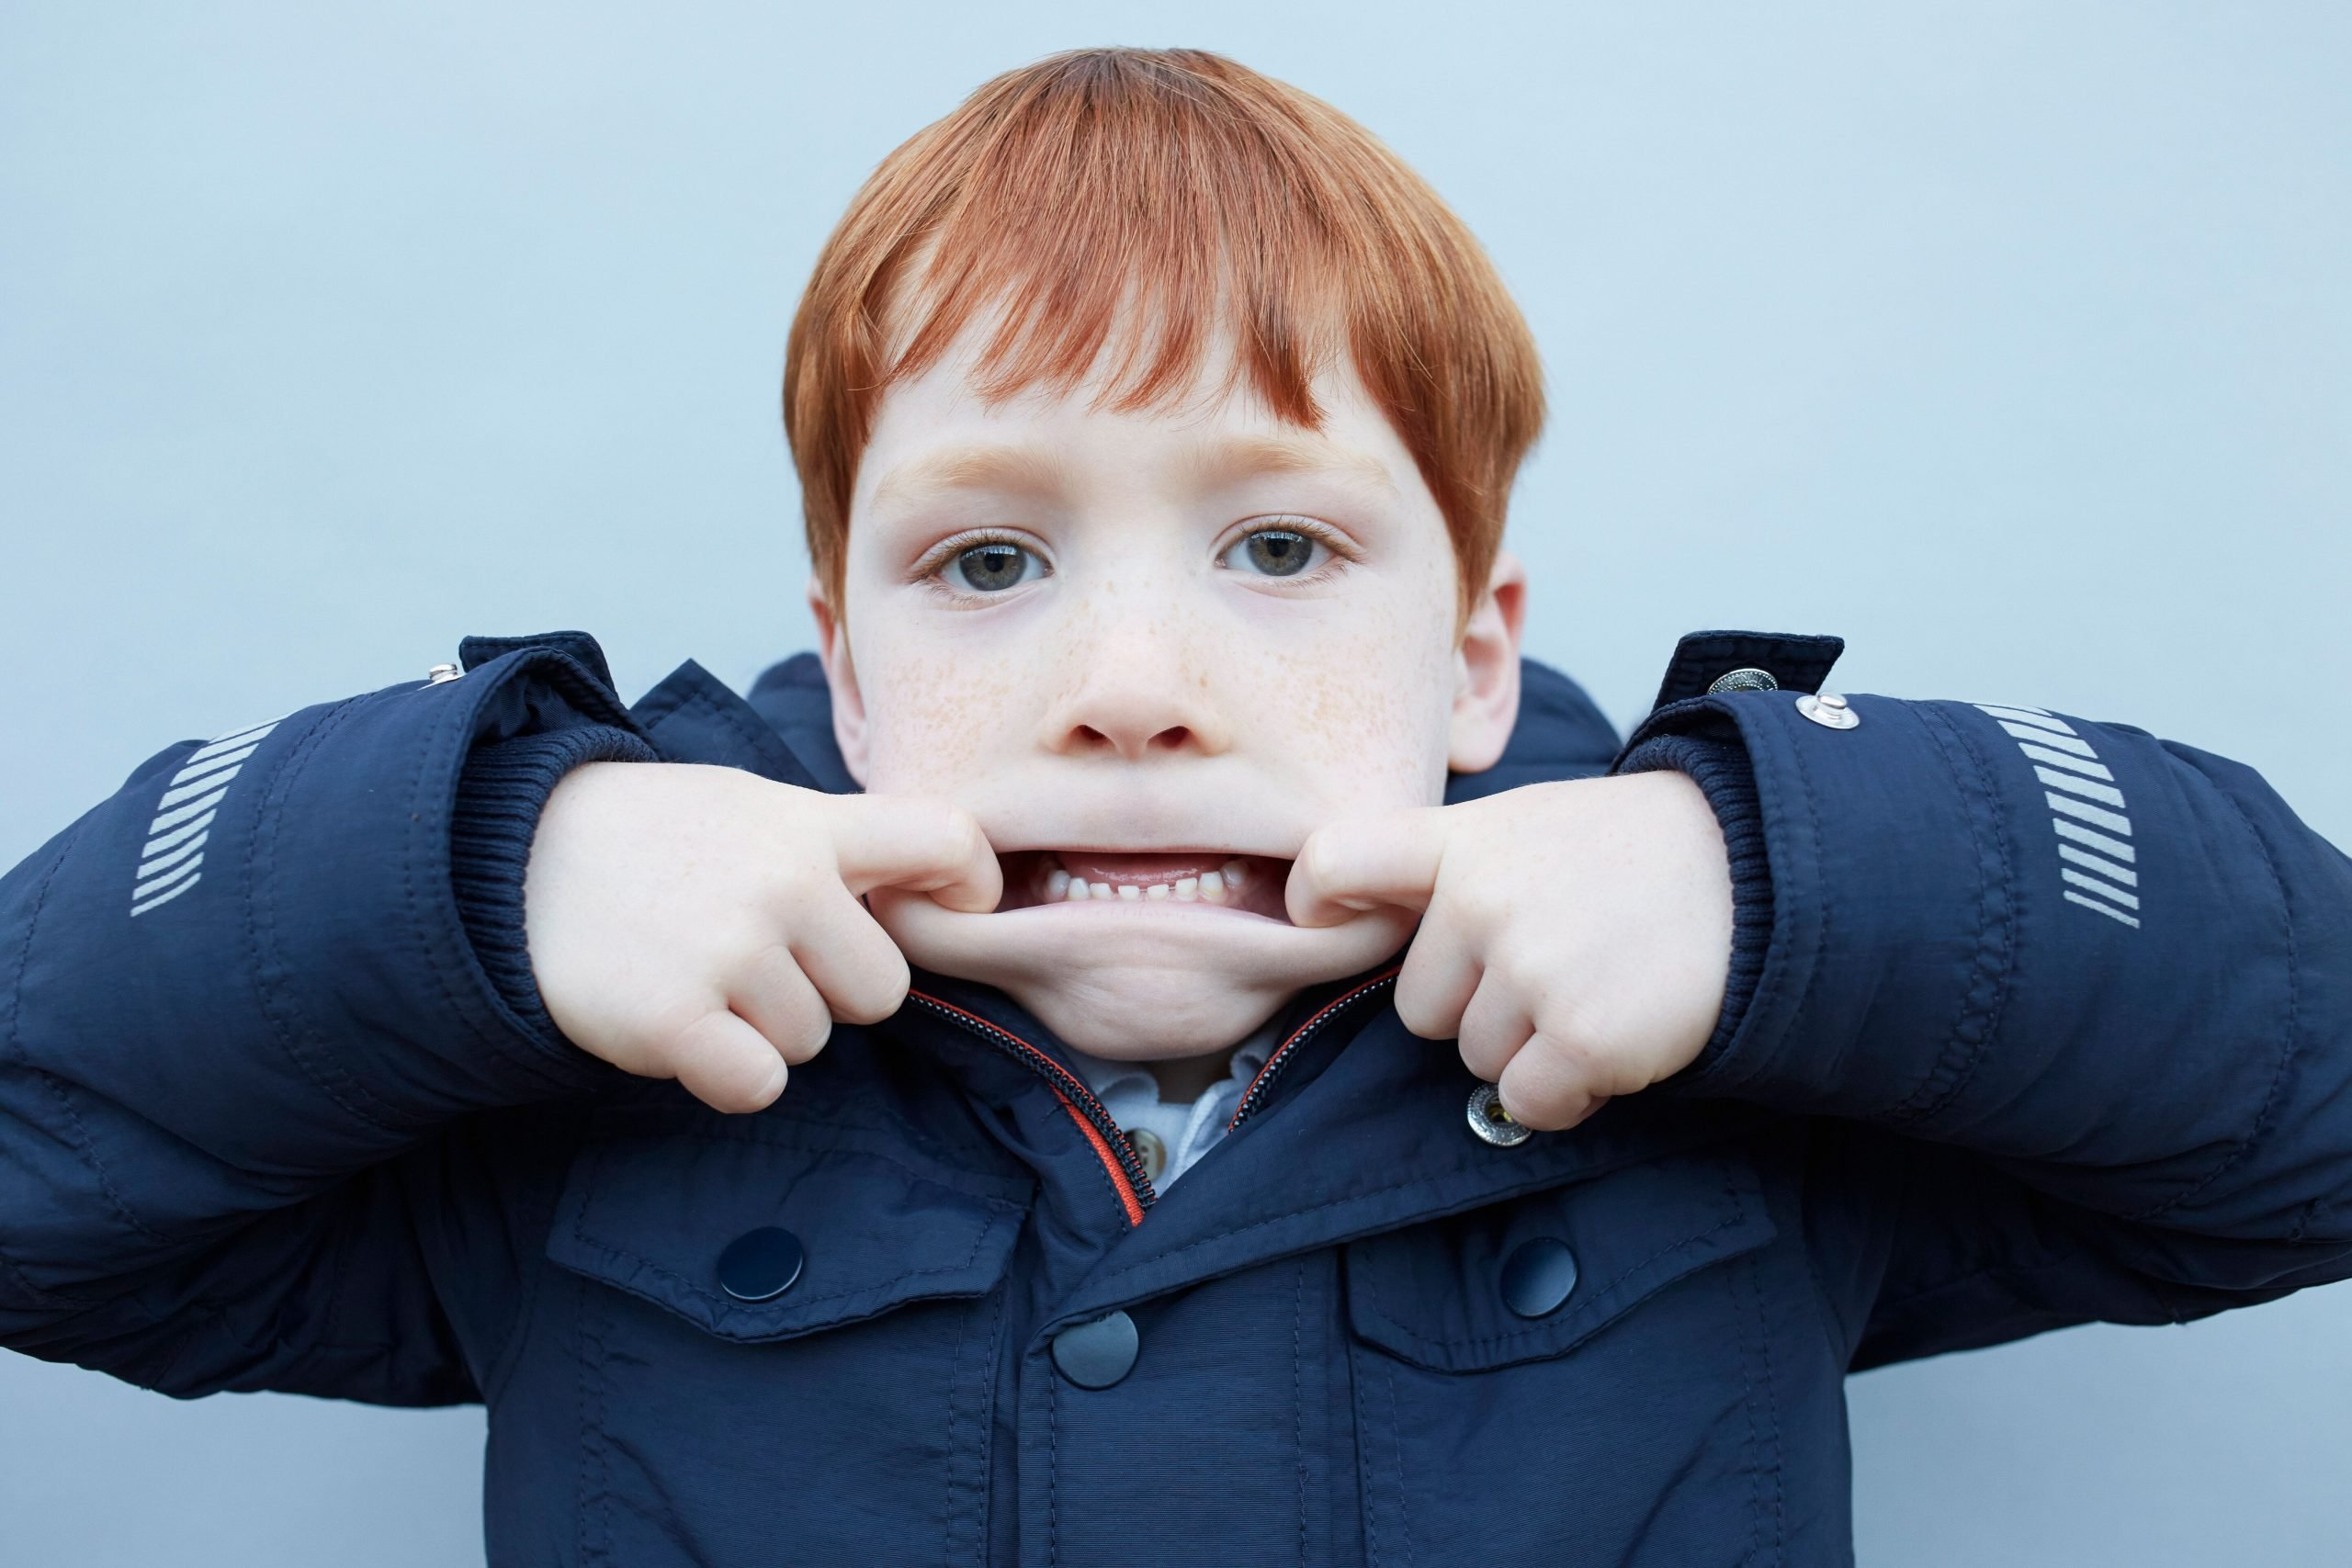 There are small ways parents can encourage their kids to touch their faces less frequently.